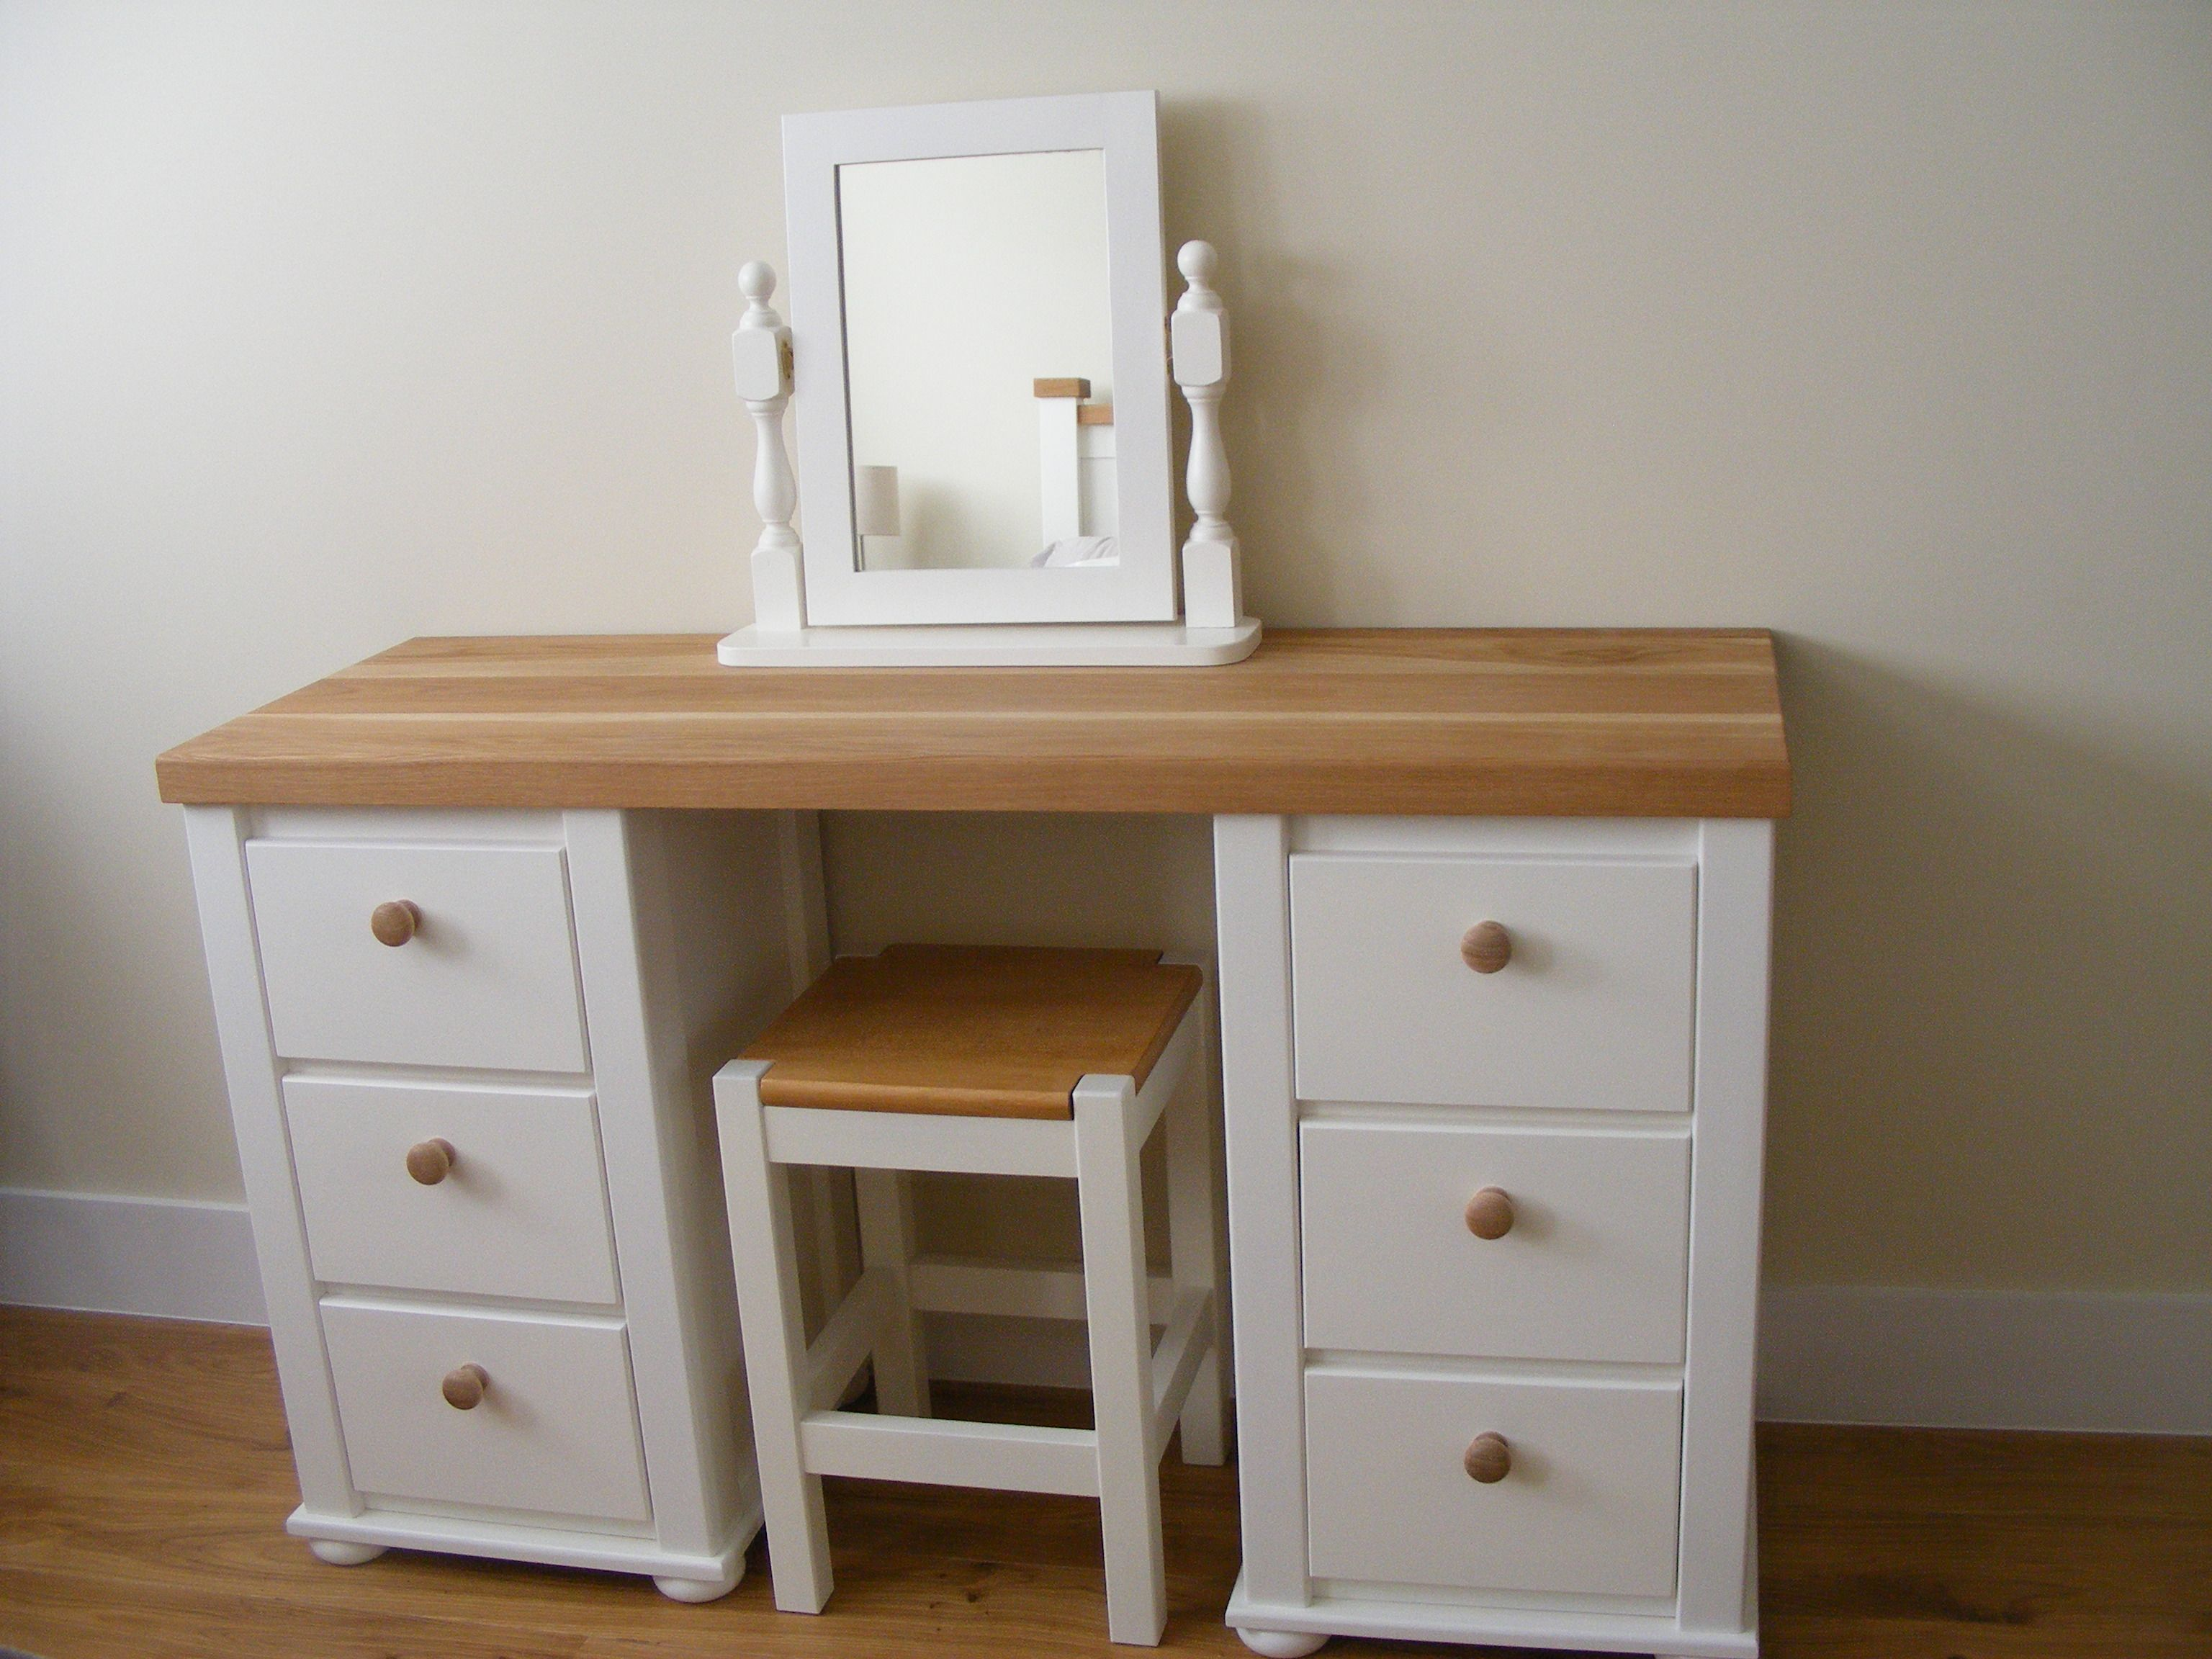 White And Solid Oak Dressing Table. Aspenn Furniture Make Bespoke Furniture  To Be The Perfect Addition To Your Home. We Only Use Solid Natural Pine Or  Oak ... Great Ideas